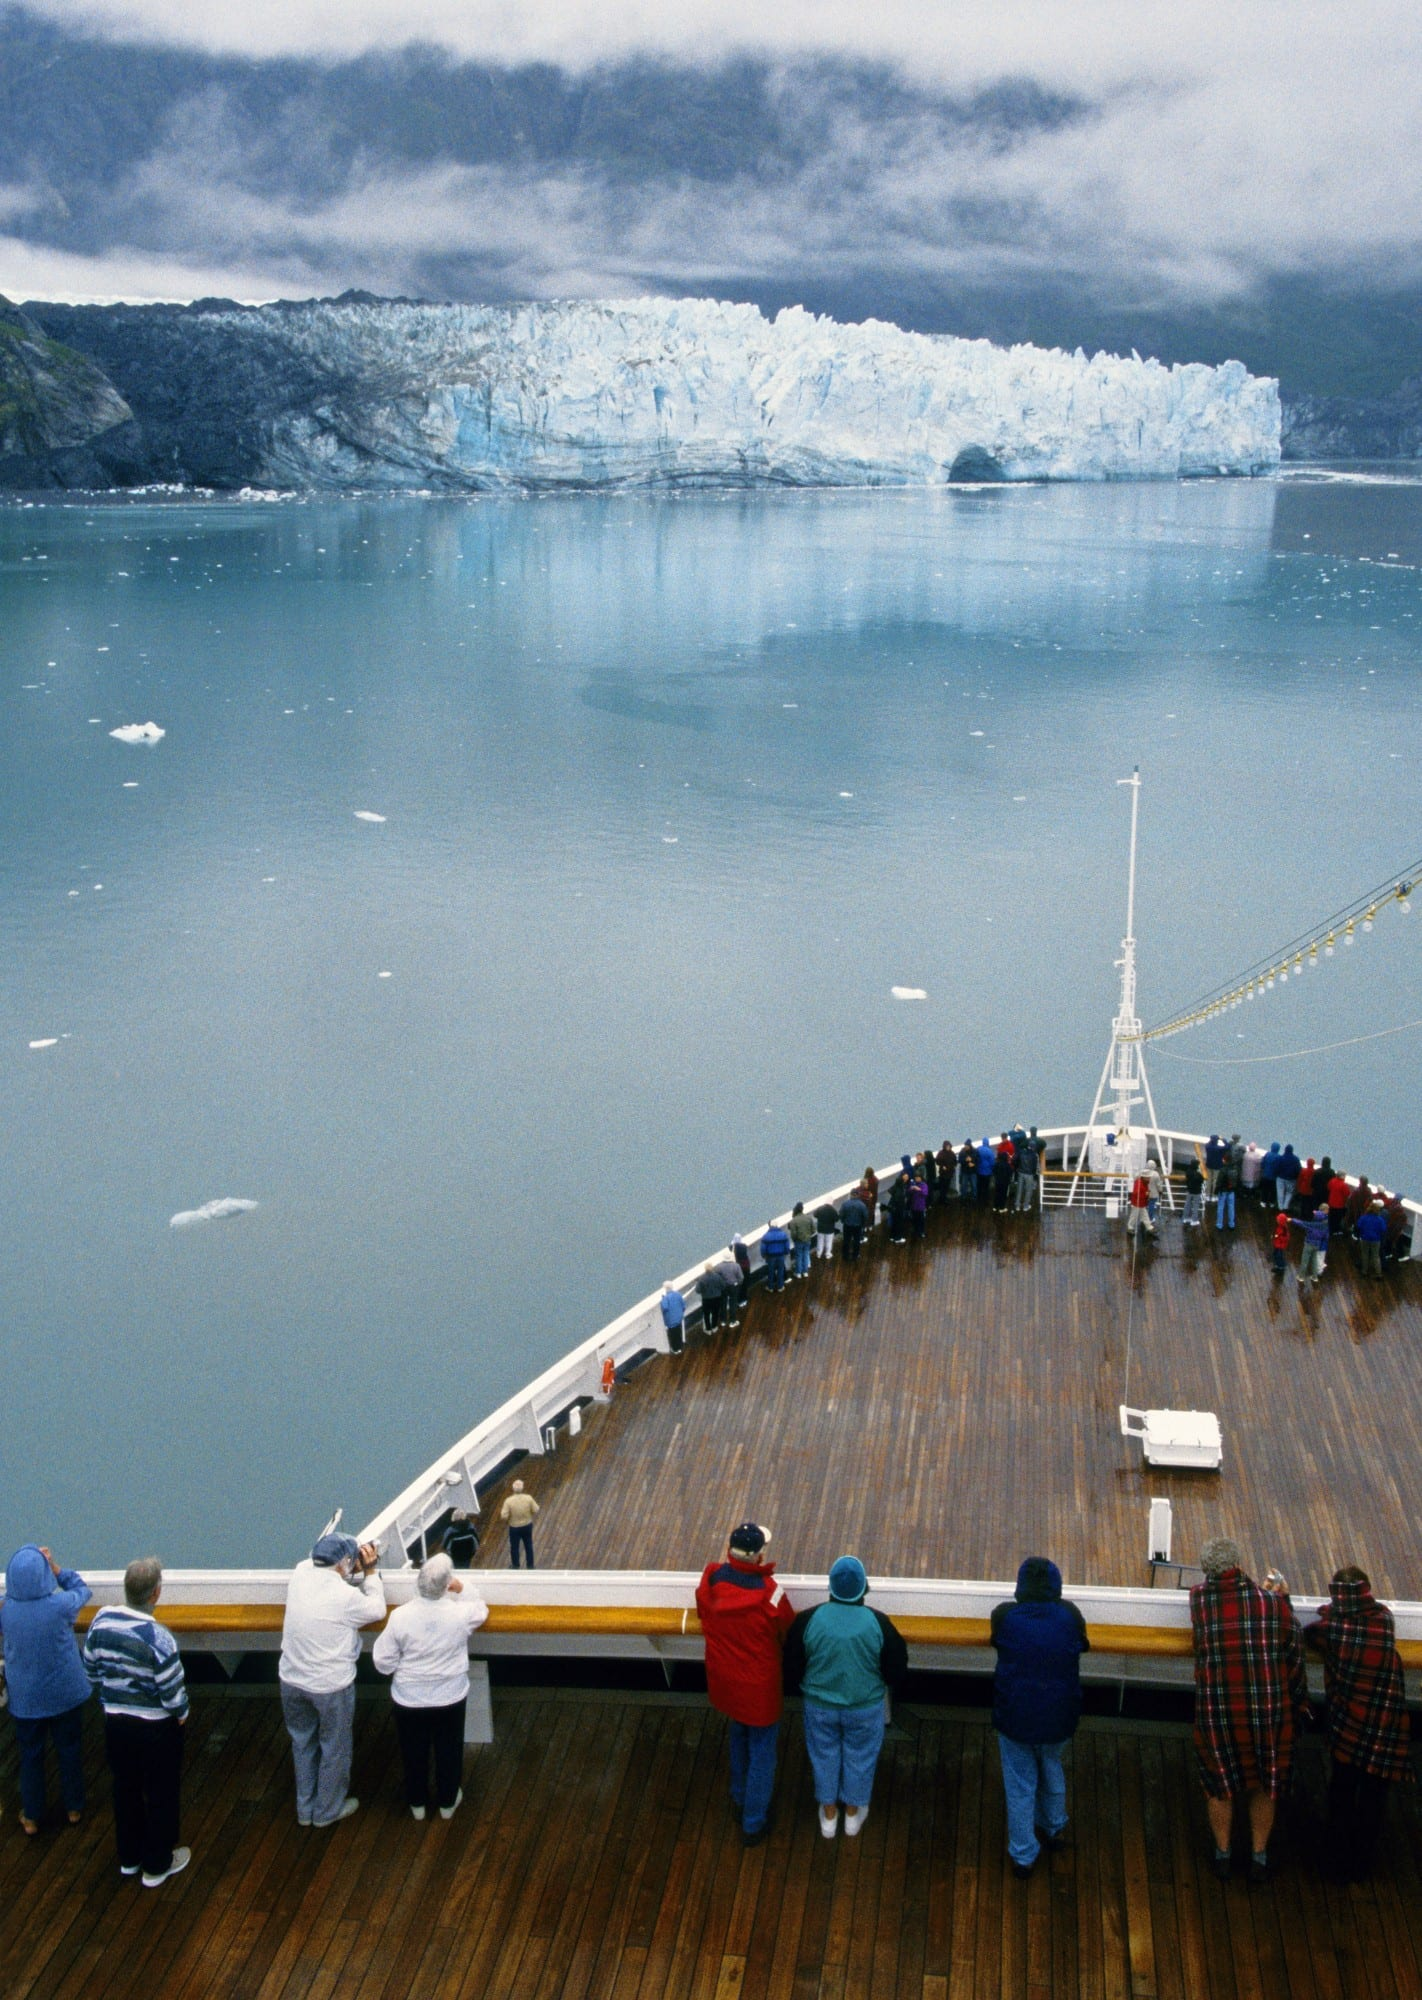 Royal Caribbean Group CEO Richard Fain: Alaska Season More Likely After CDC Relaxes Rules